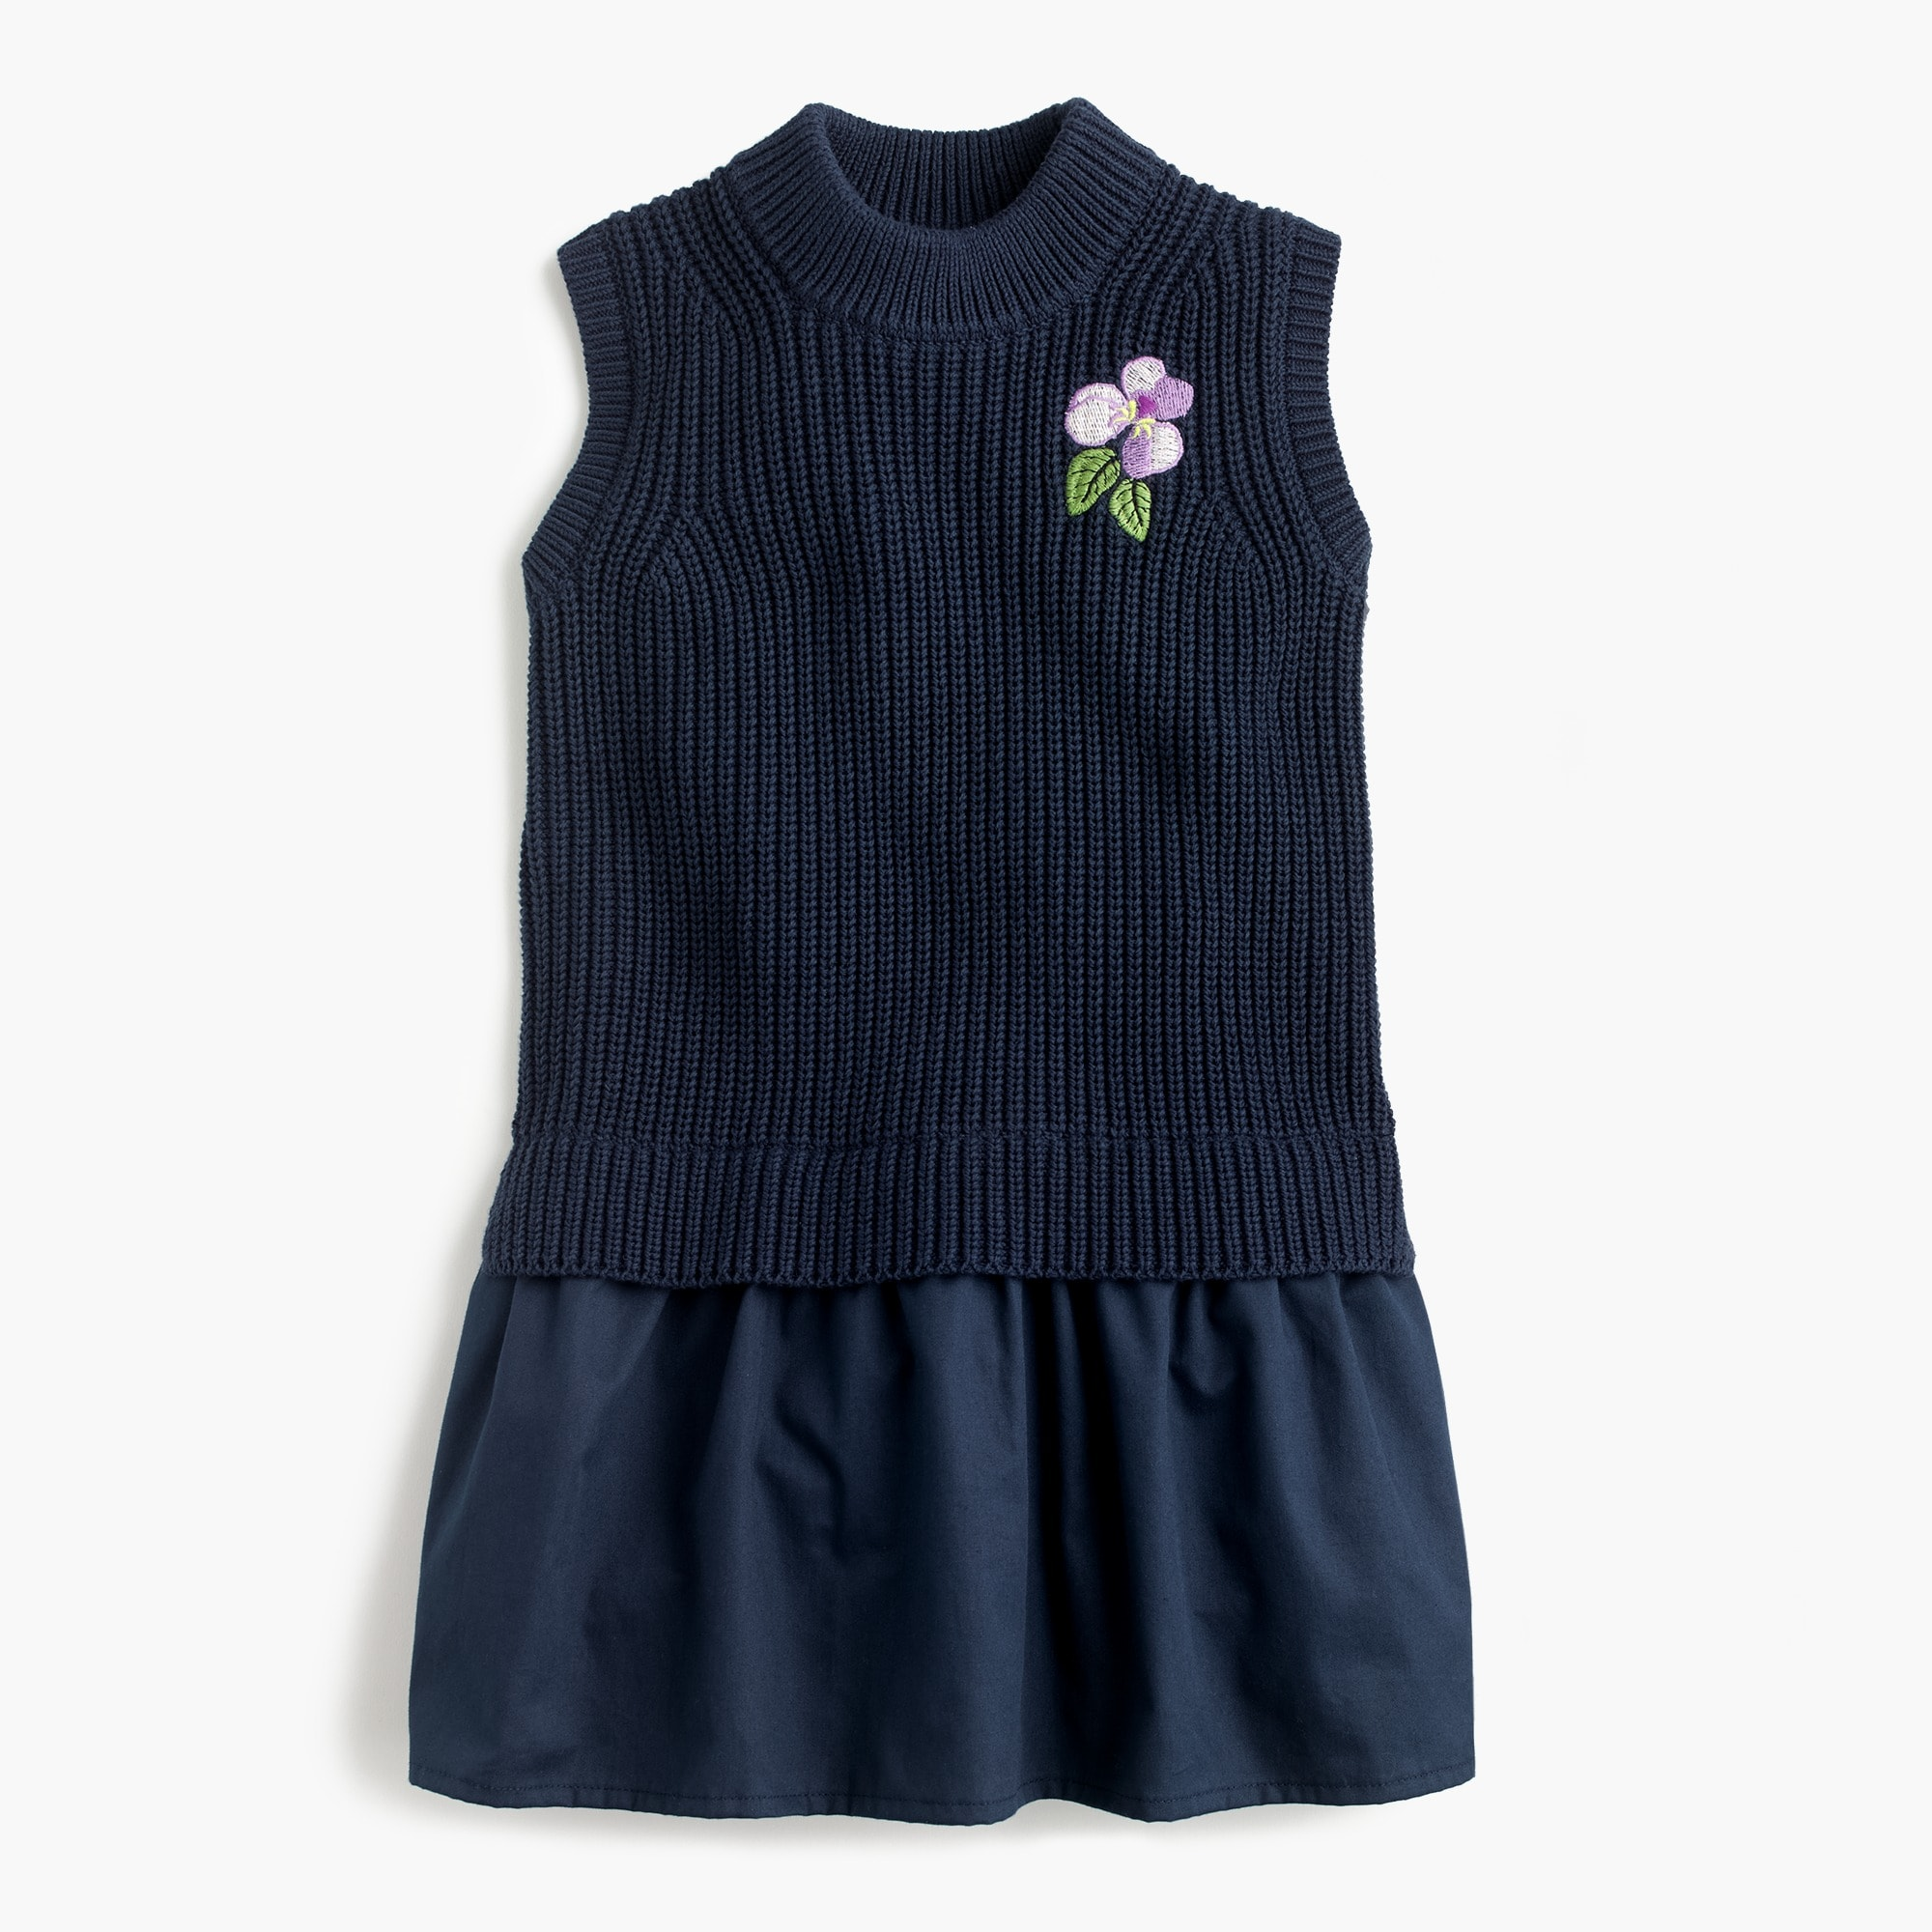 Girls' flower-embroidered sweater jumper